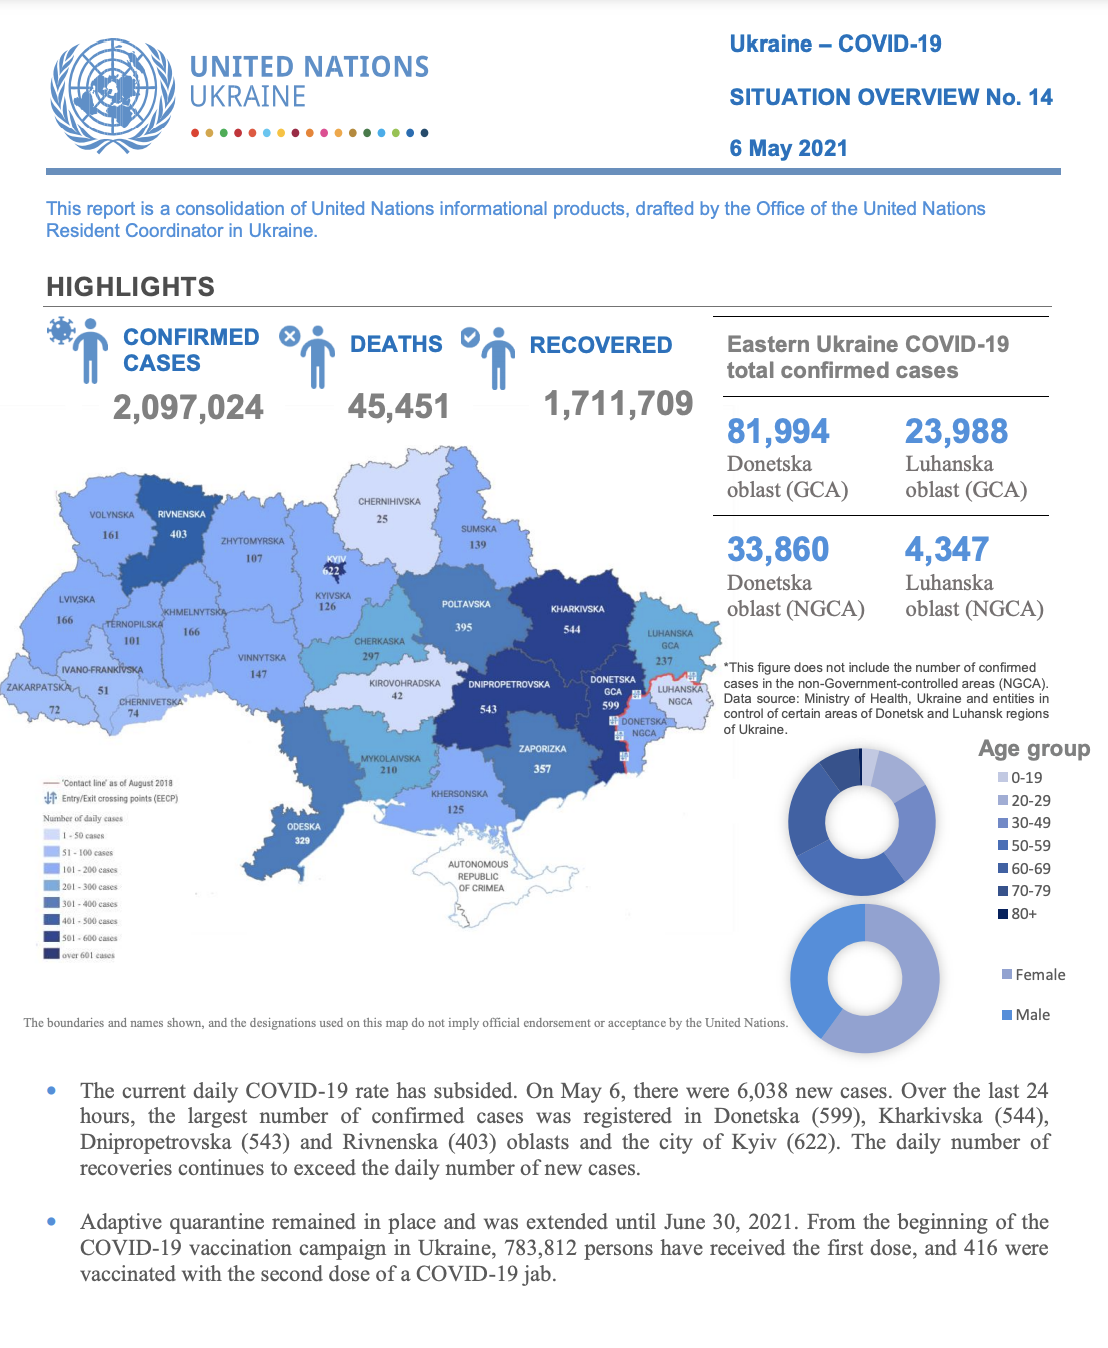 Ukraine – COVID-19 Situation overview No. 14